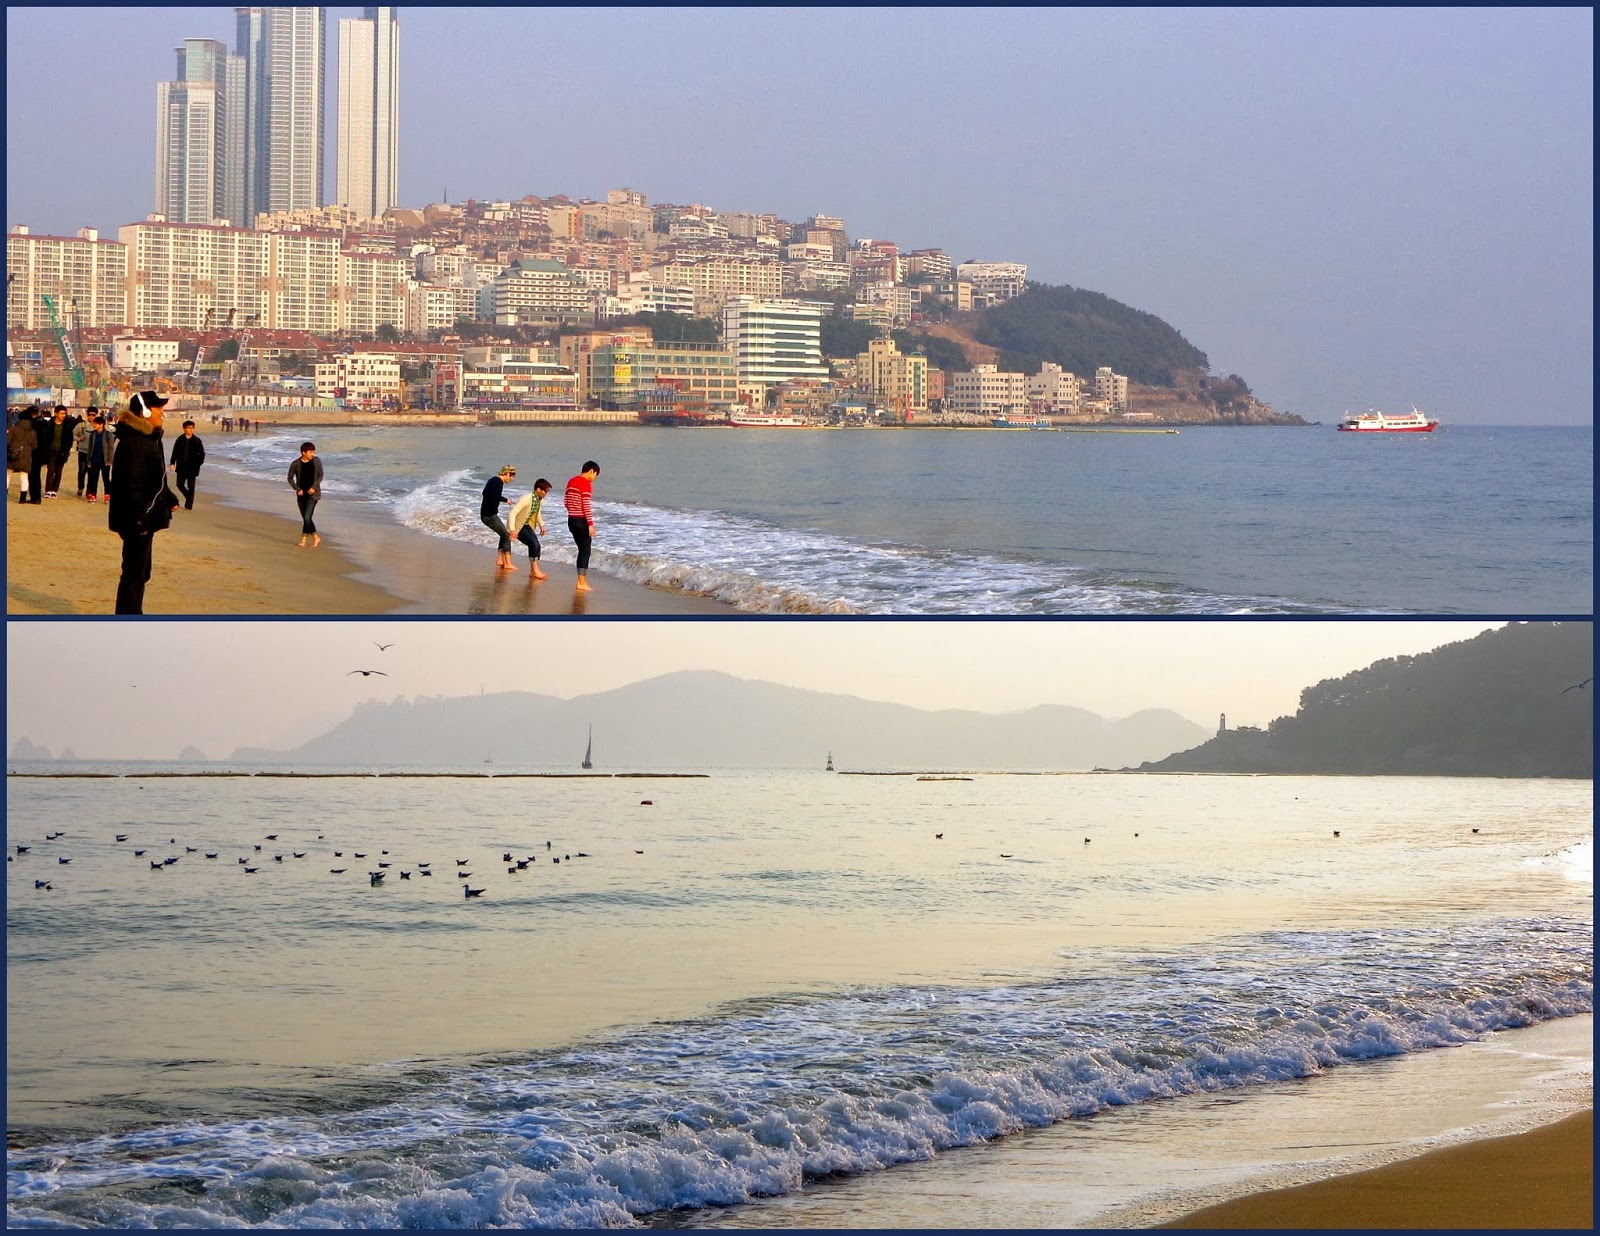 Busan's Haeundae beach in February